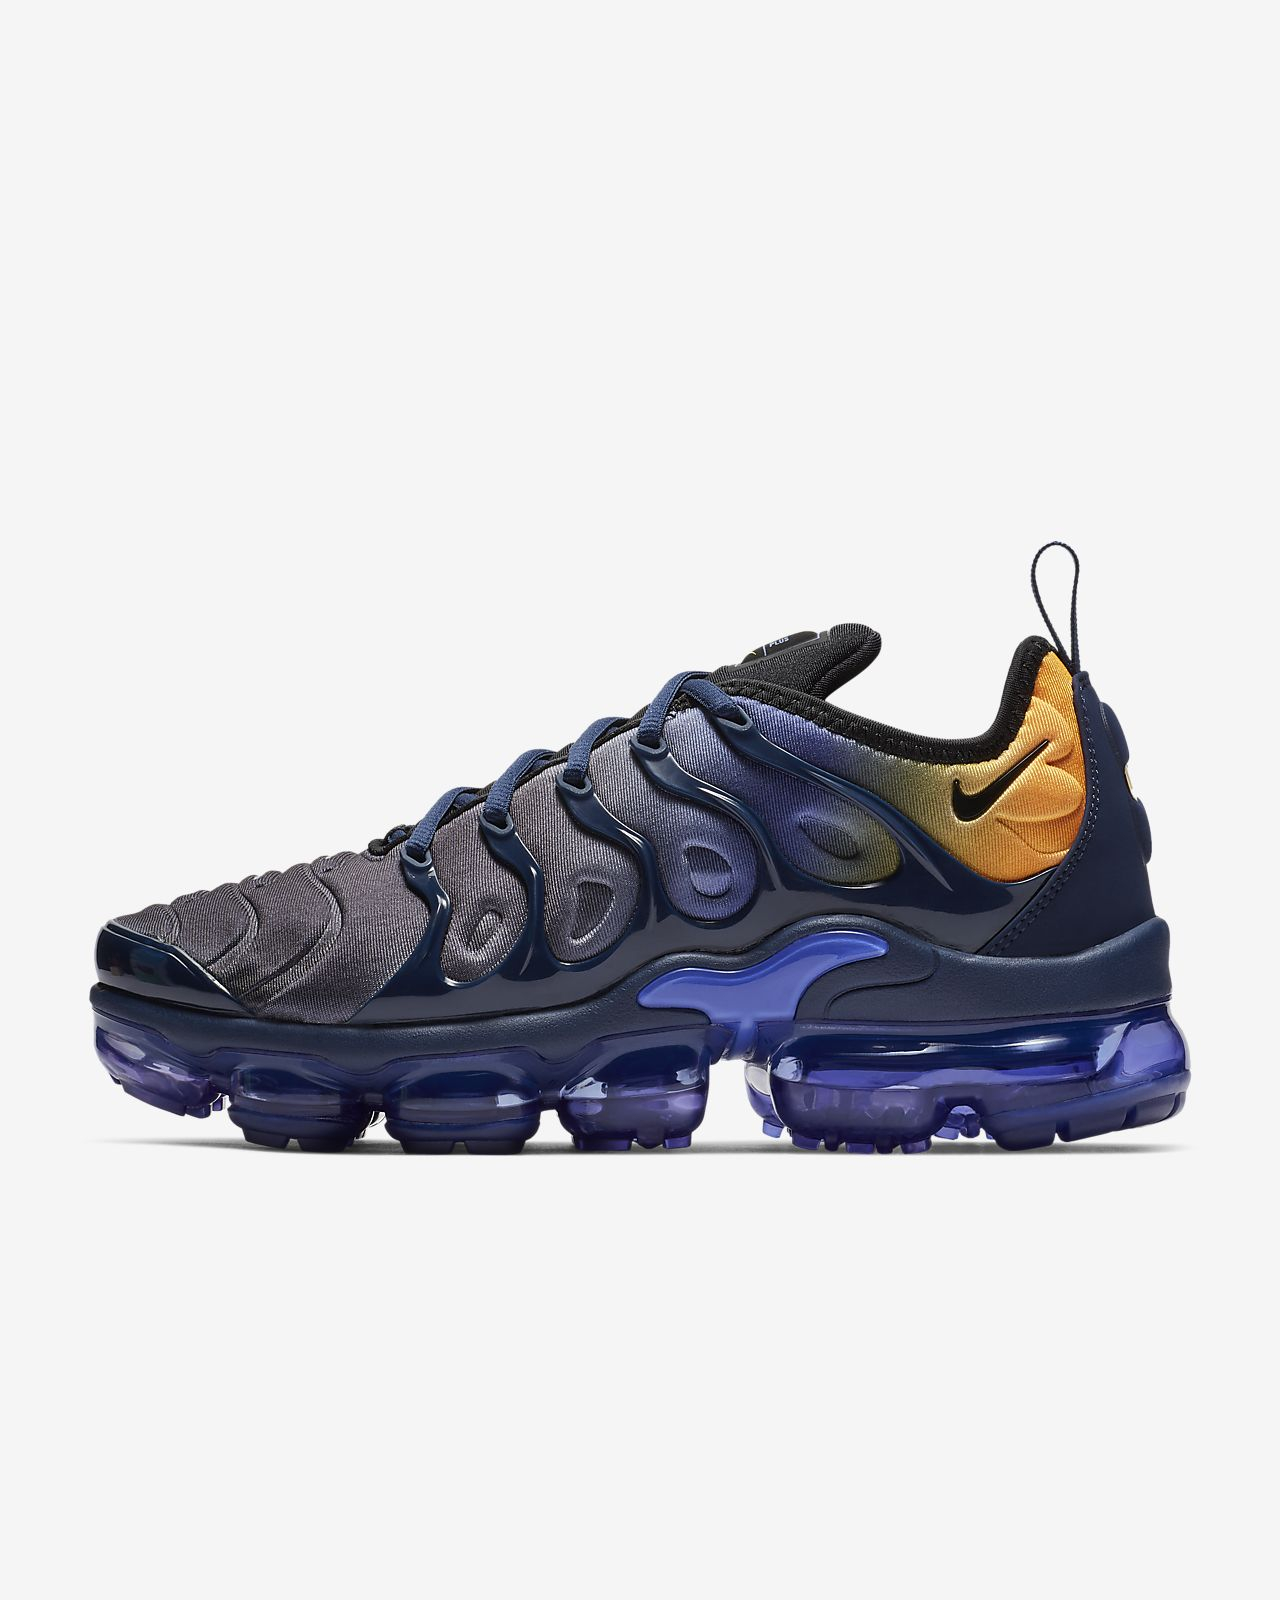 319a4011131 Nike Air VaporMax Plus Women s Shoe. Nike.com